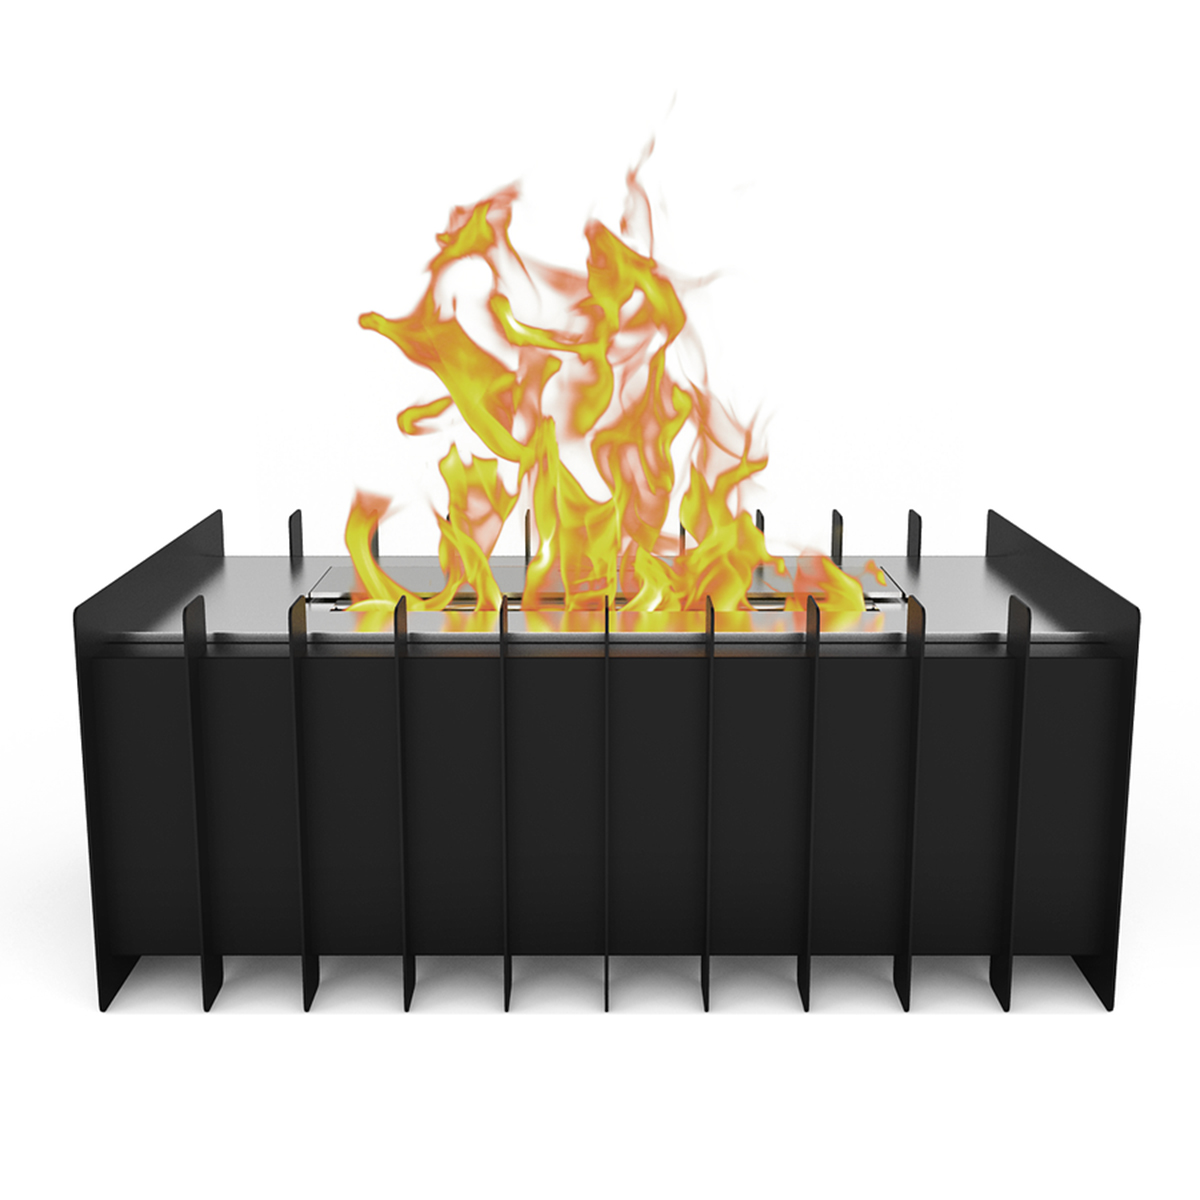 Pro 12 In Ventless Bio Ethanol Fireplace Grate Burner